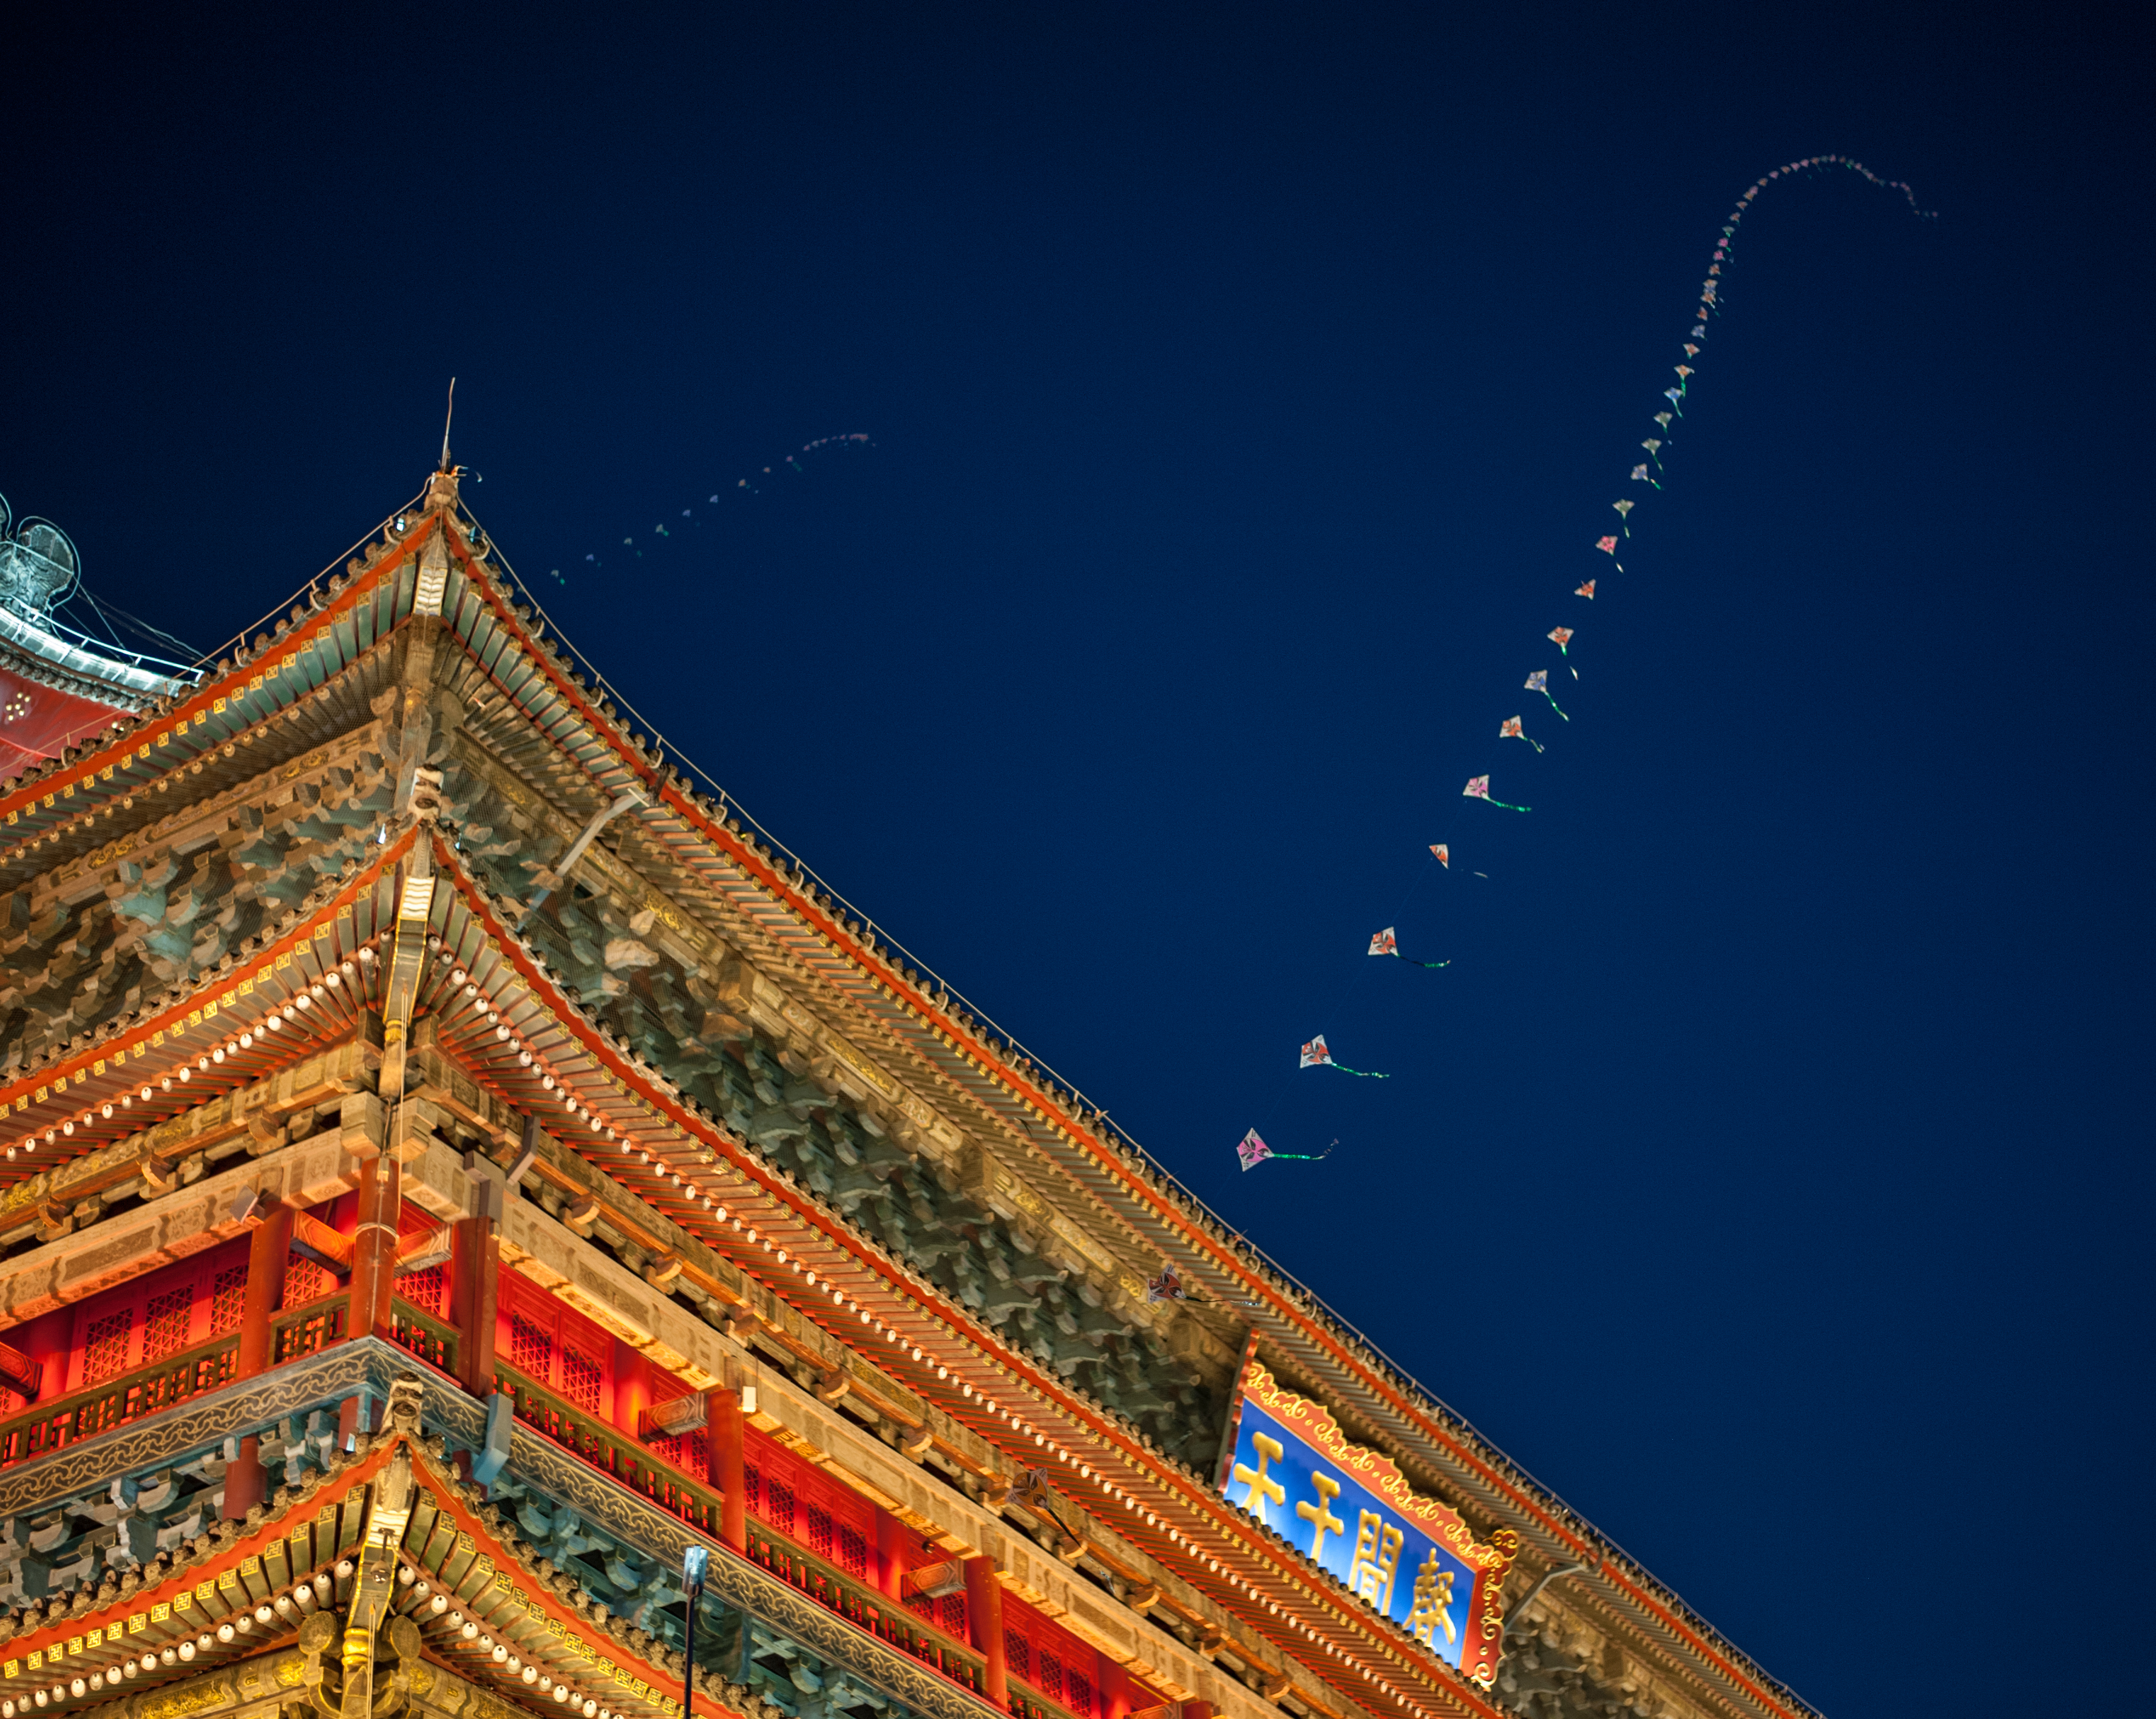 Xi'an Drum Tower with Kites